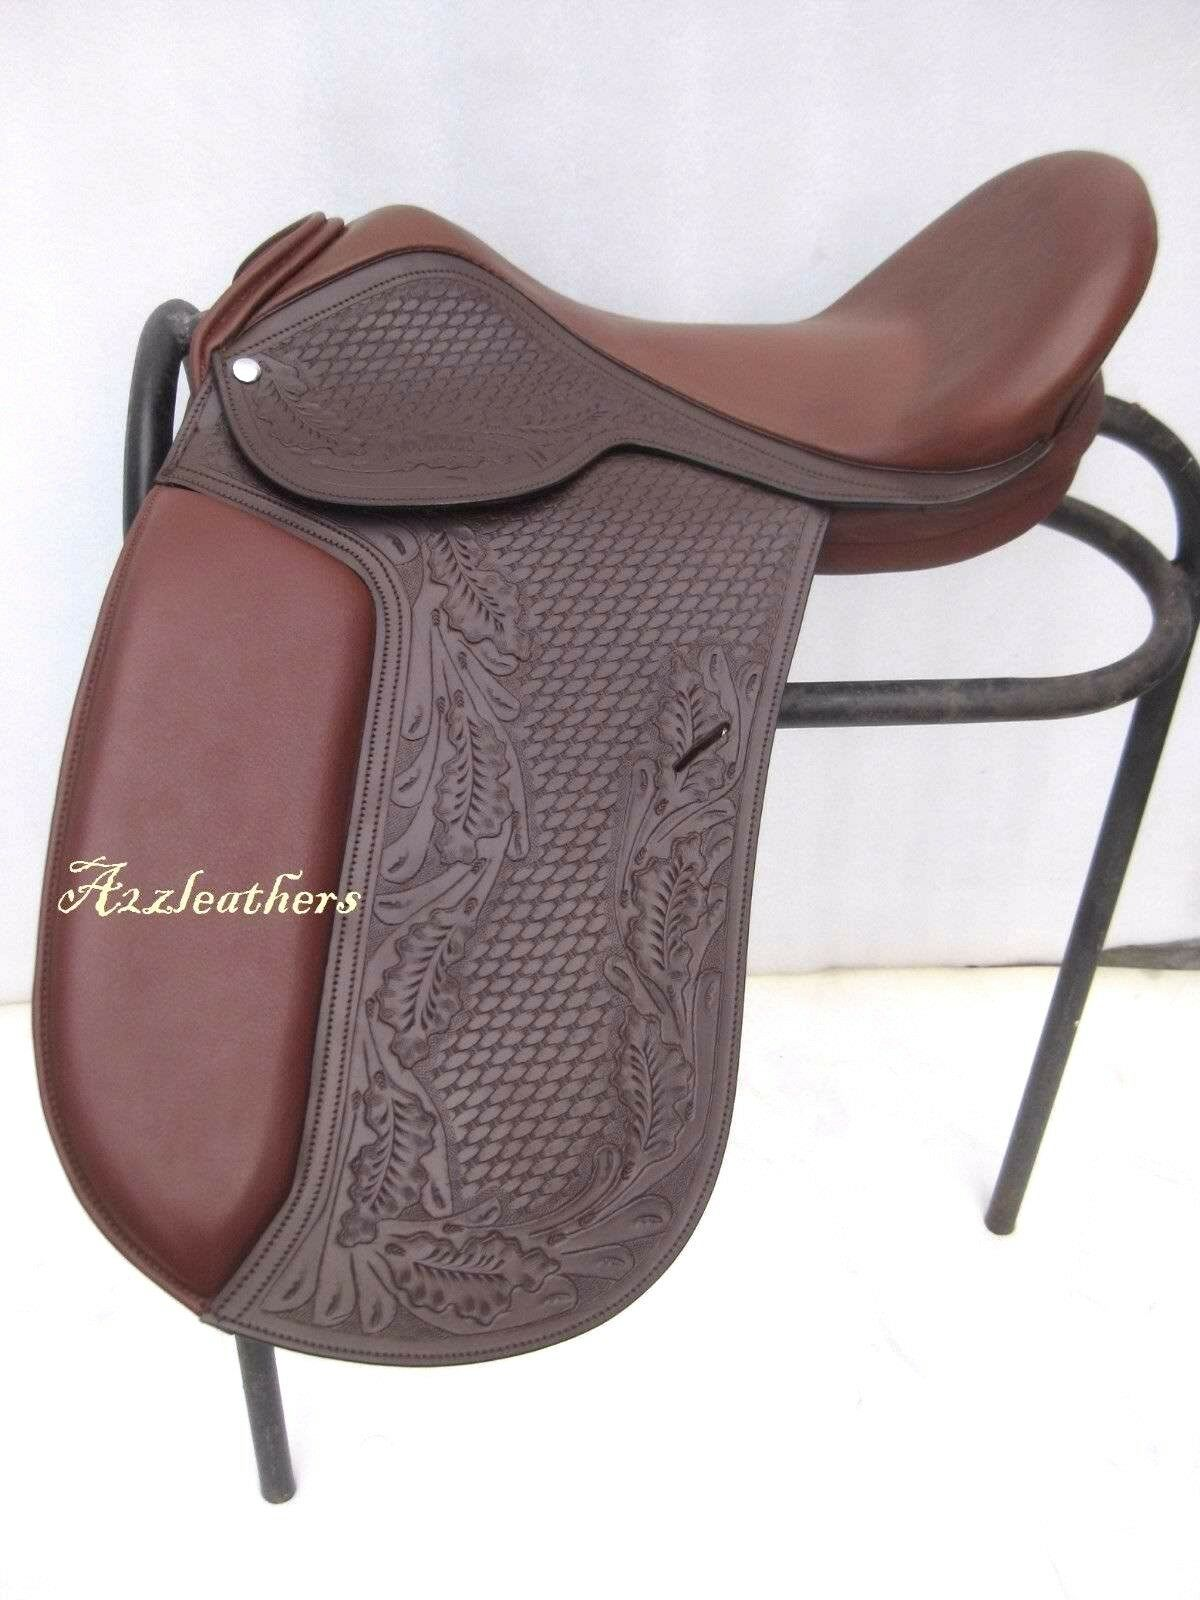 Brown Dressage Treeless saddle with tooling and carving, 9 sizes + accesories